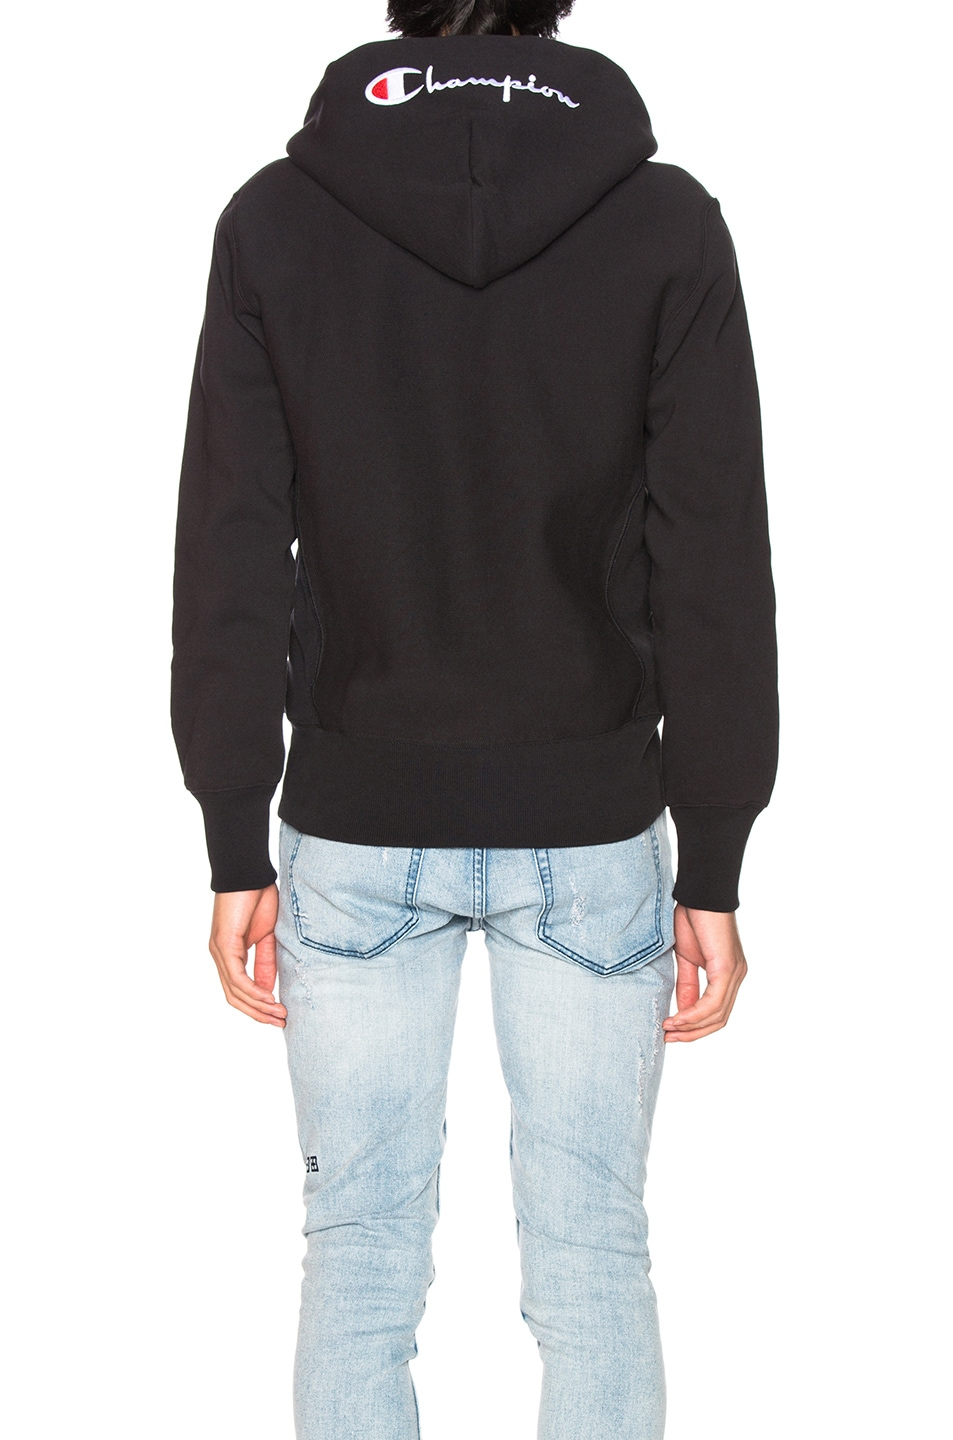 Image 4 of Champion Reverse Weave Hooded Sweatshirt in Black